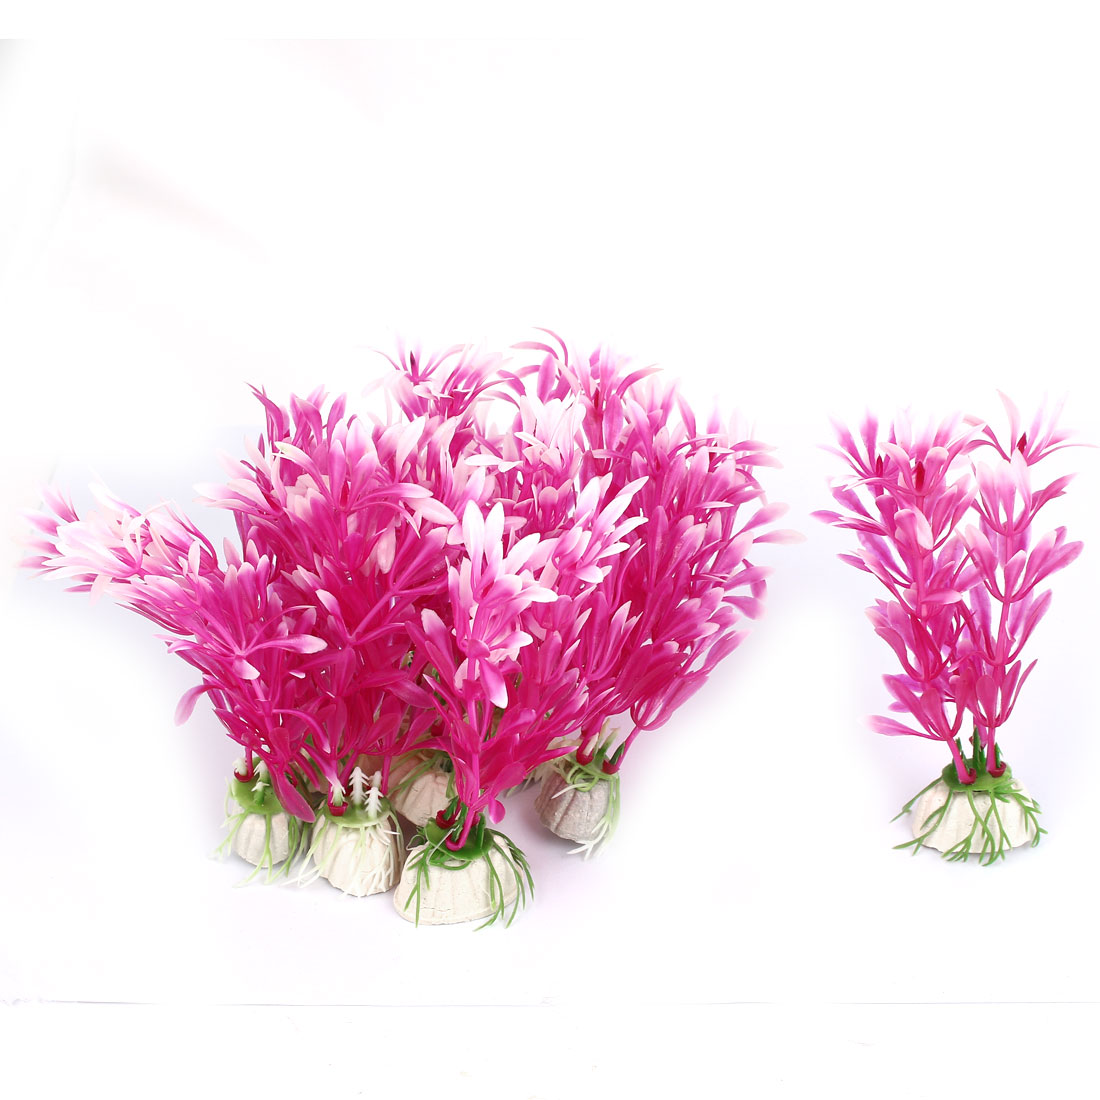 Aquarium Fish Tank Artificial Fake Flower Plant Decor Ornament Fuchsia 10Pcs